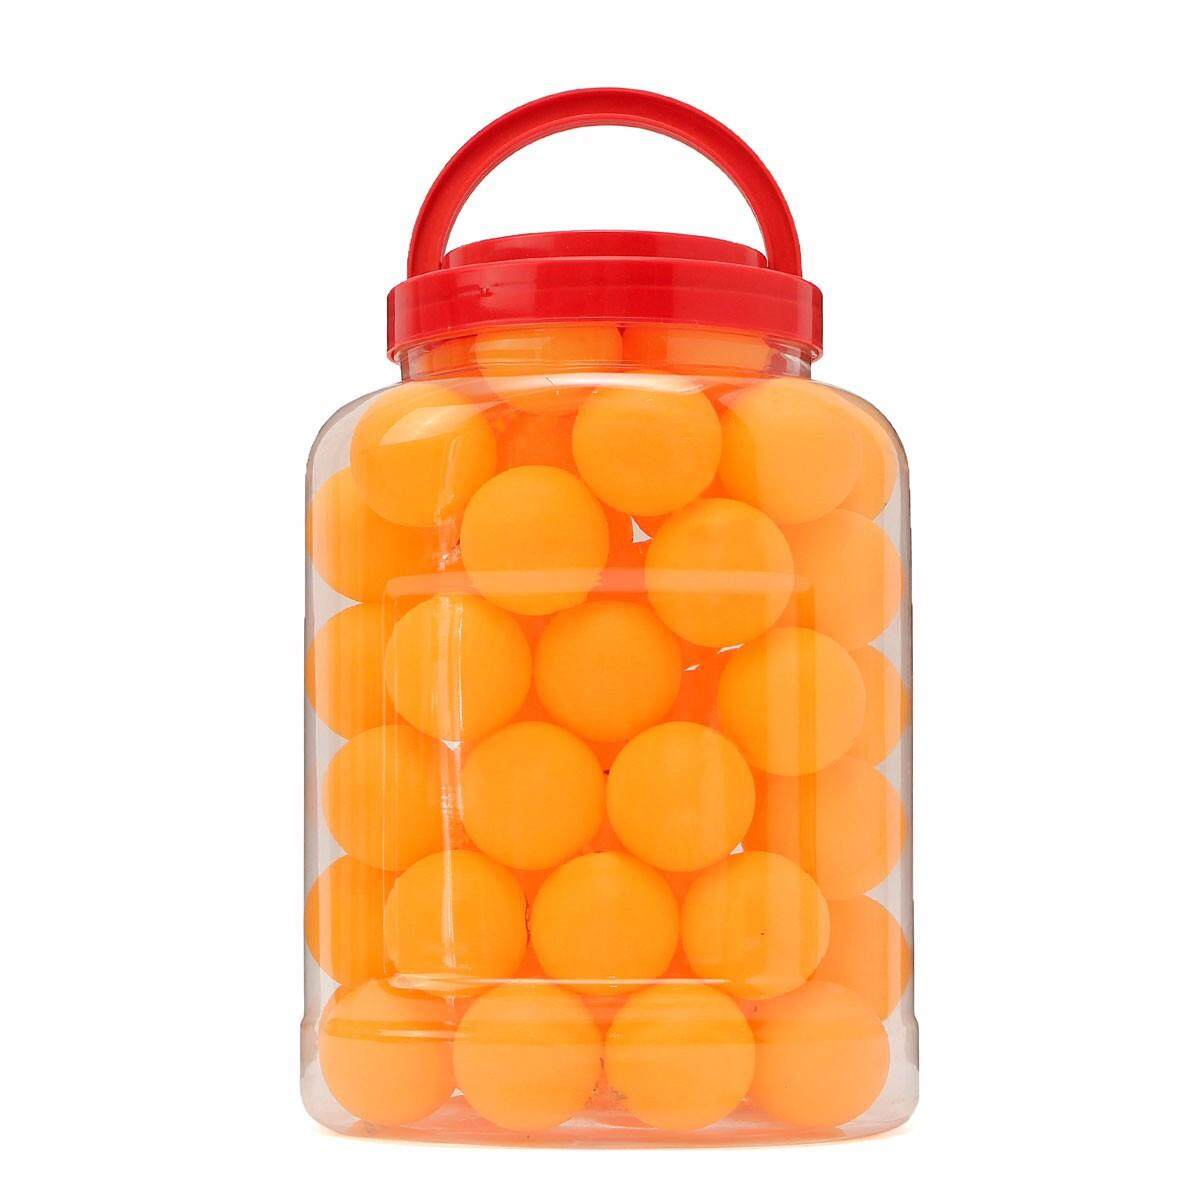 60pcs 40mm Table Tennis Olympic Pingpong Balls Indoor Sports Toy Orange White By Audew.